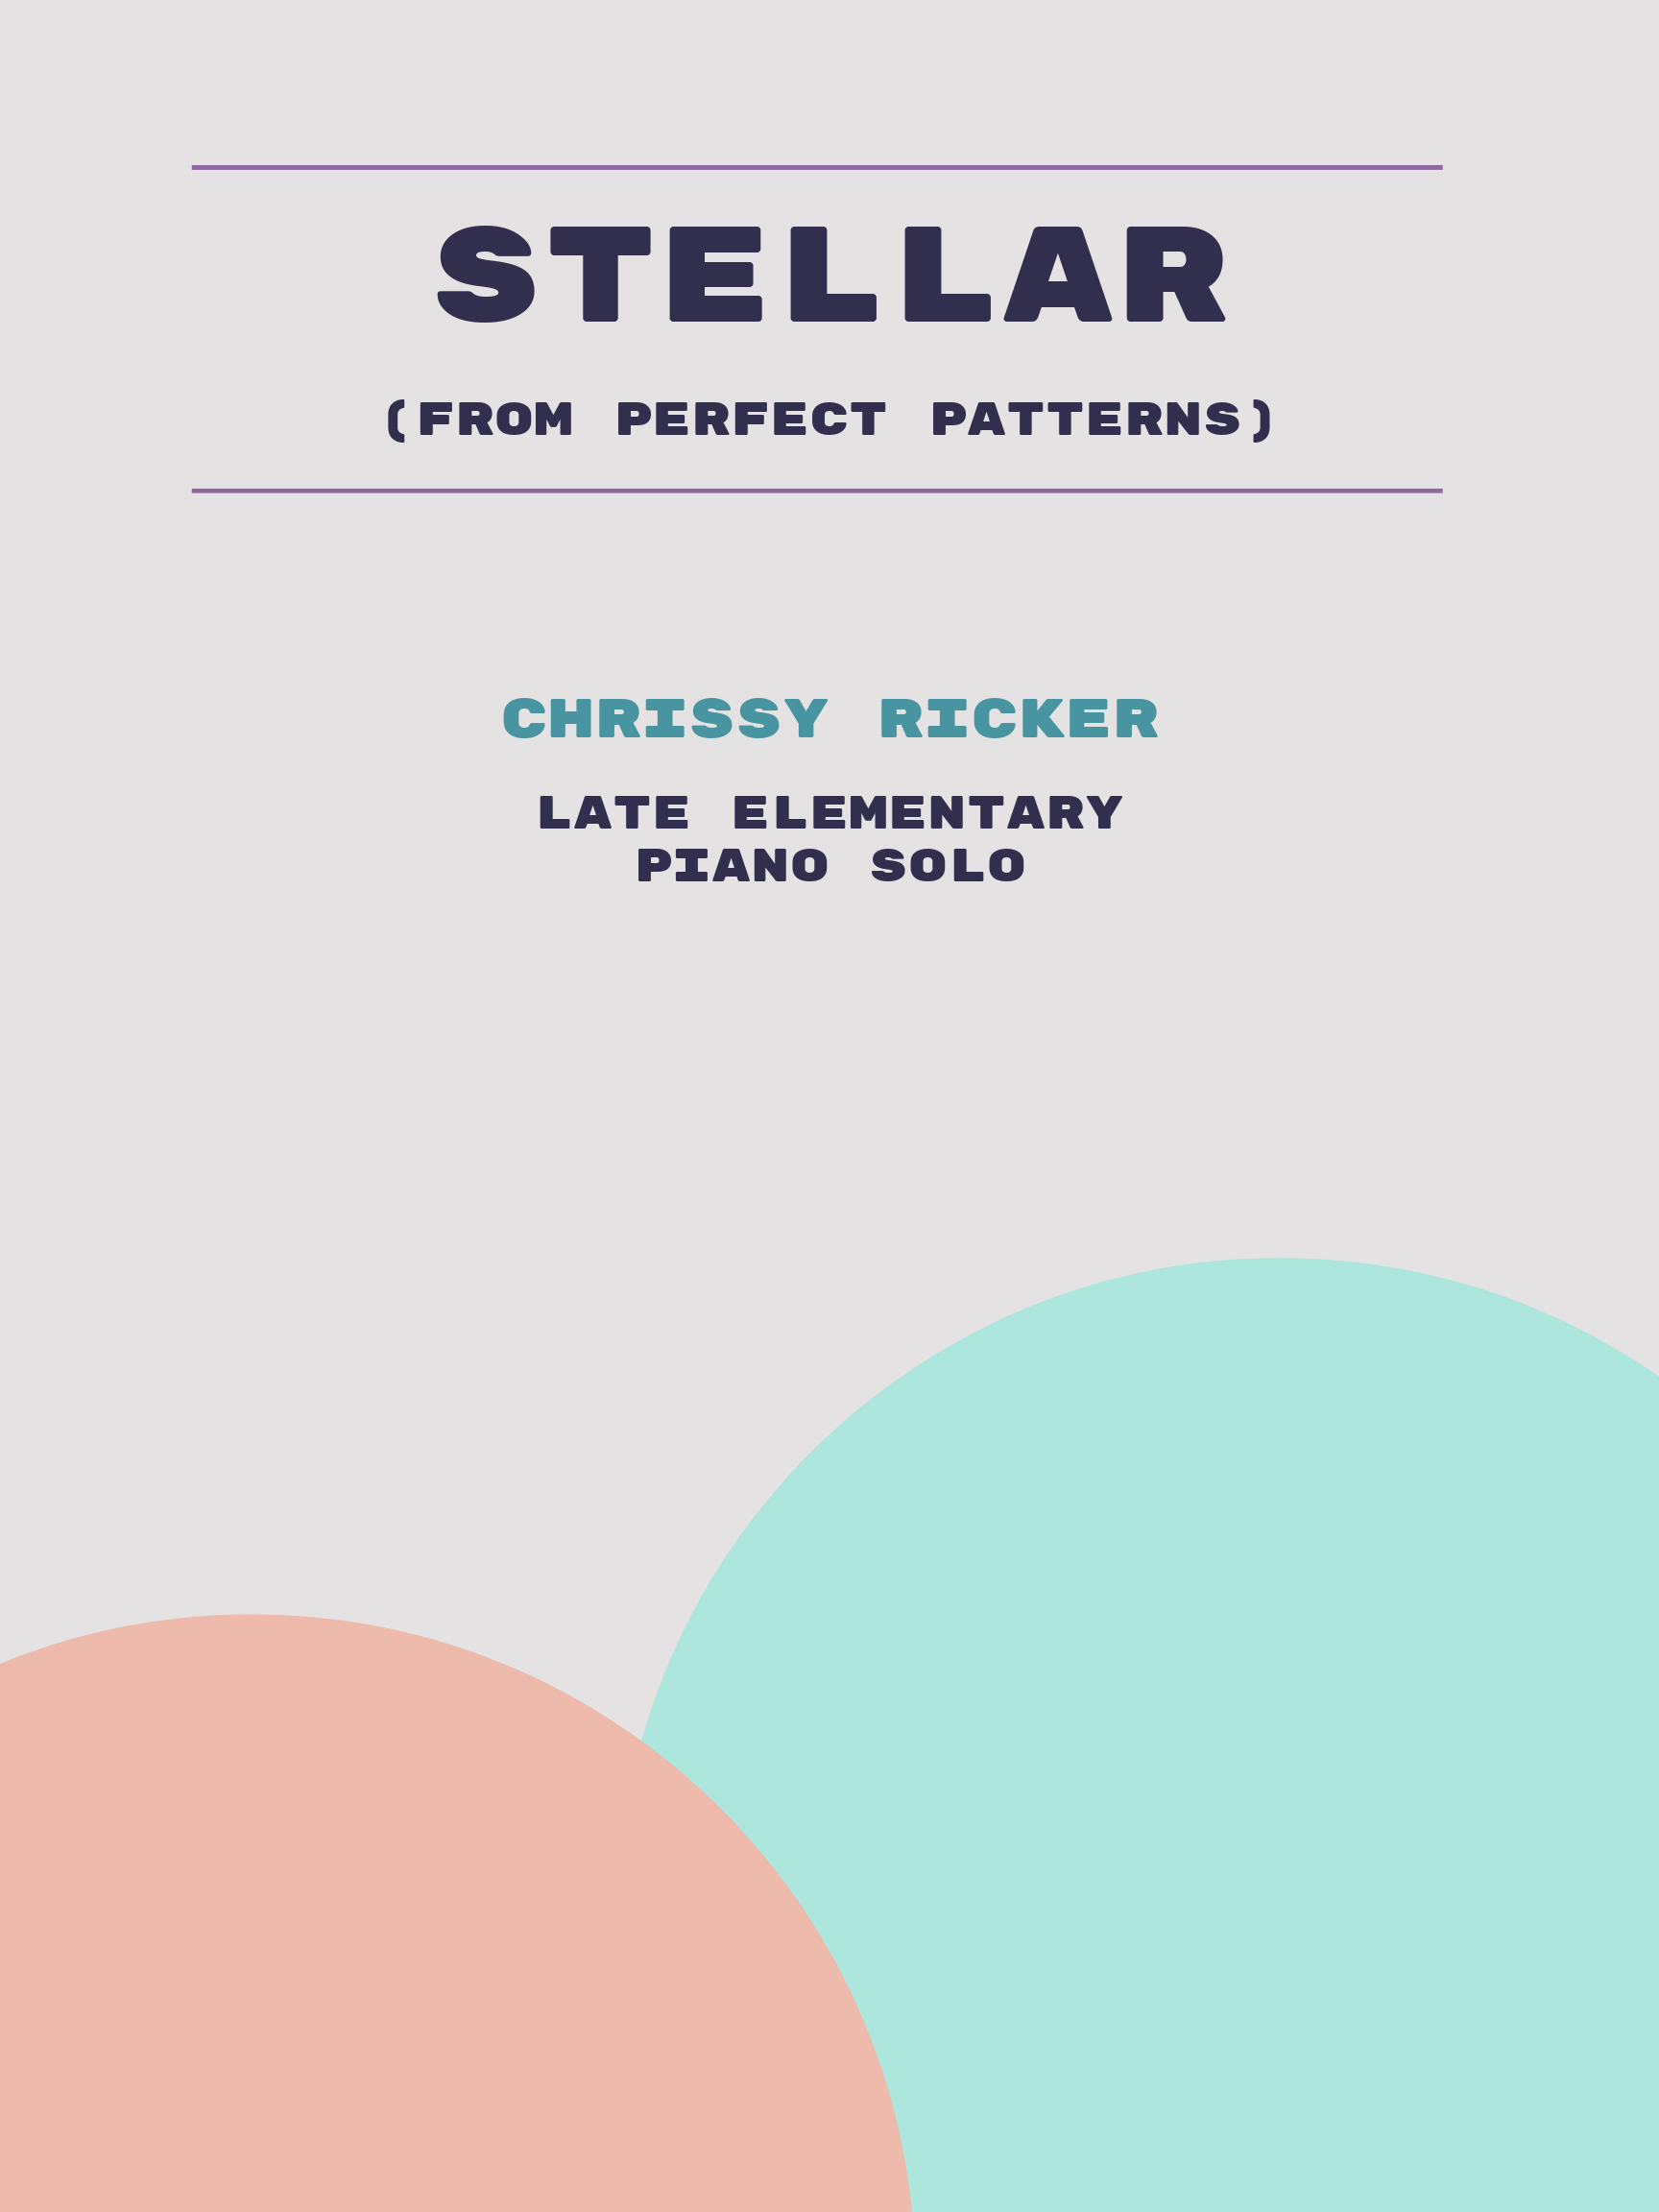 Stellar by Chrissy Ricker